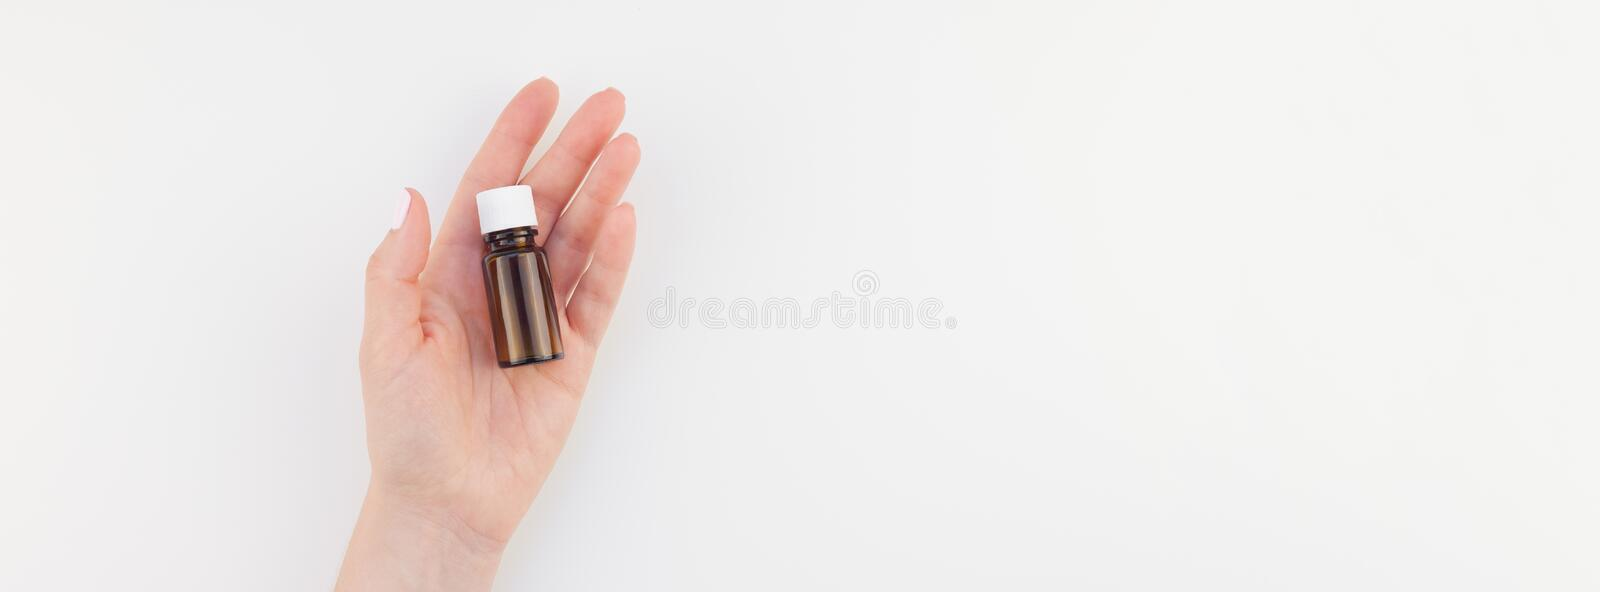 Woman hand with small glass bottle isolated royalty free stock image